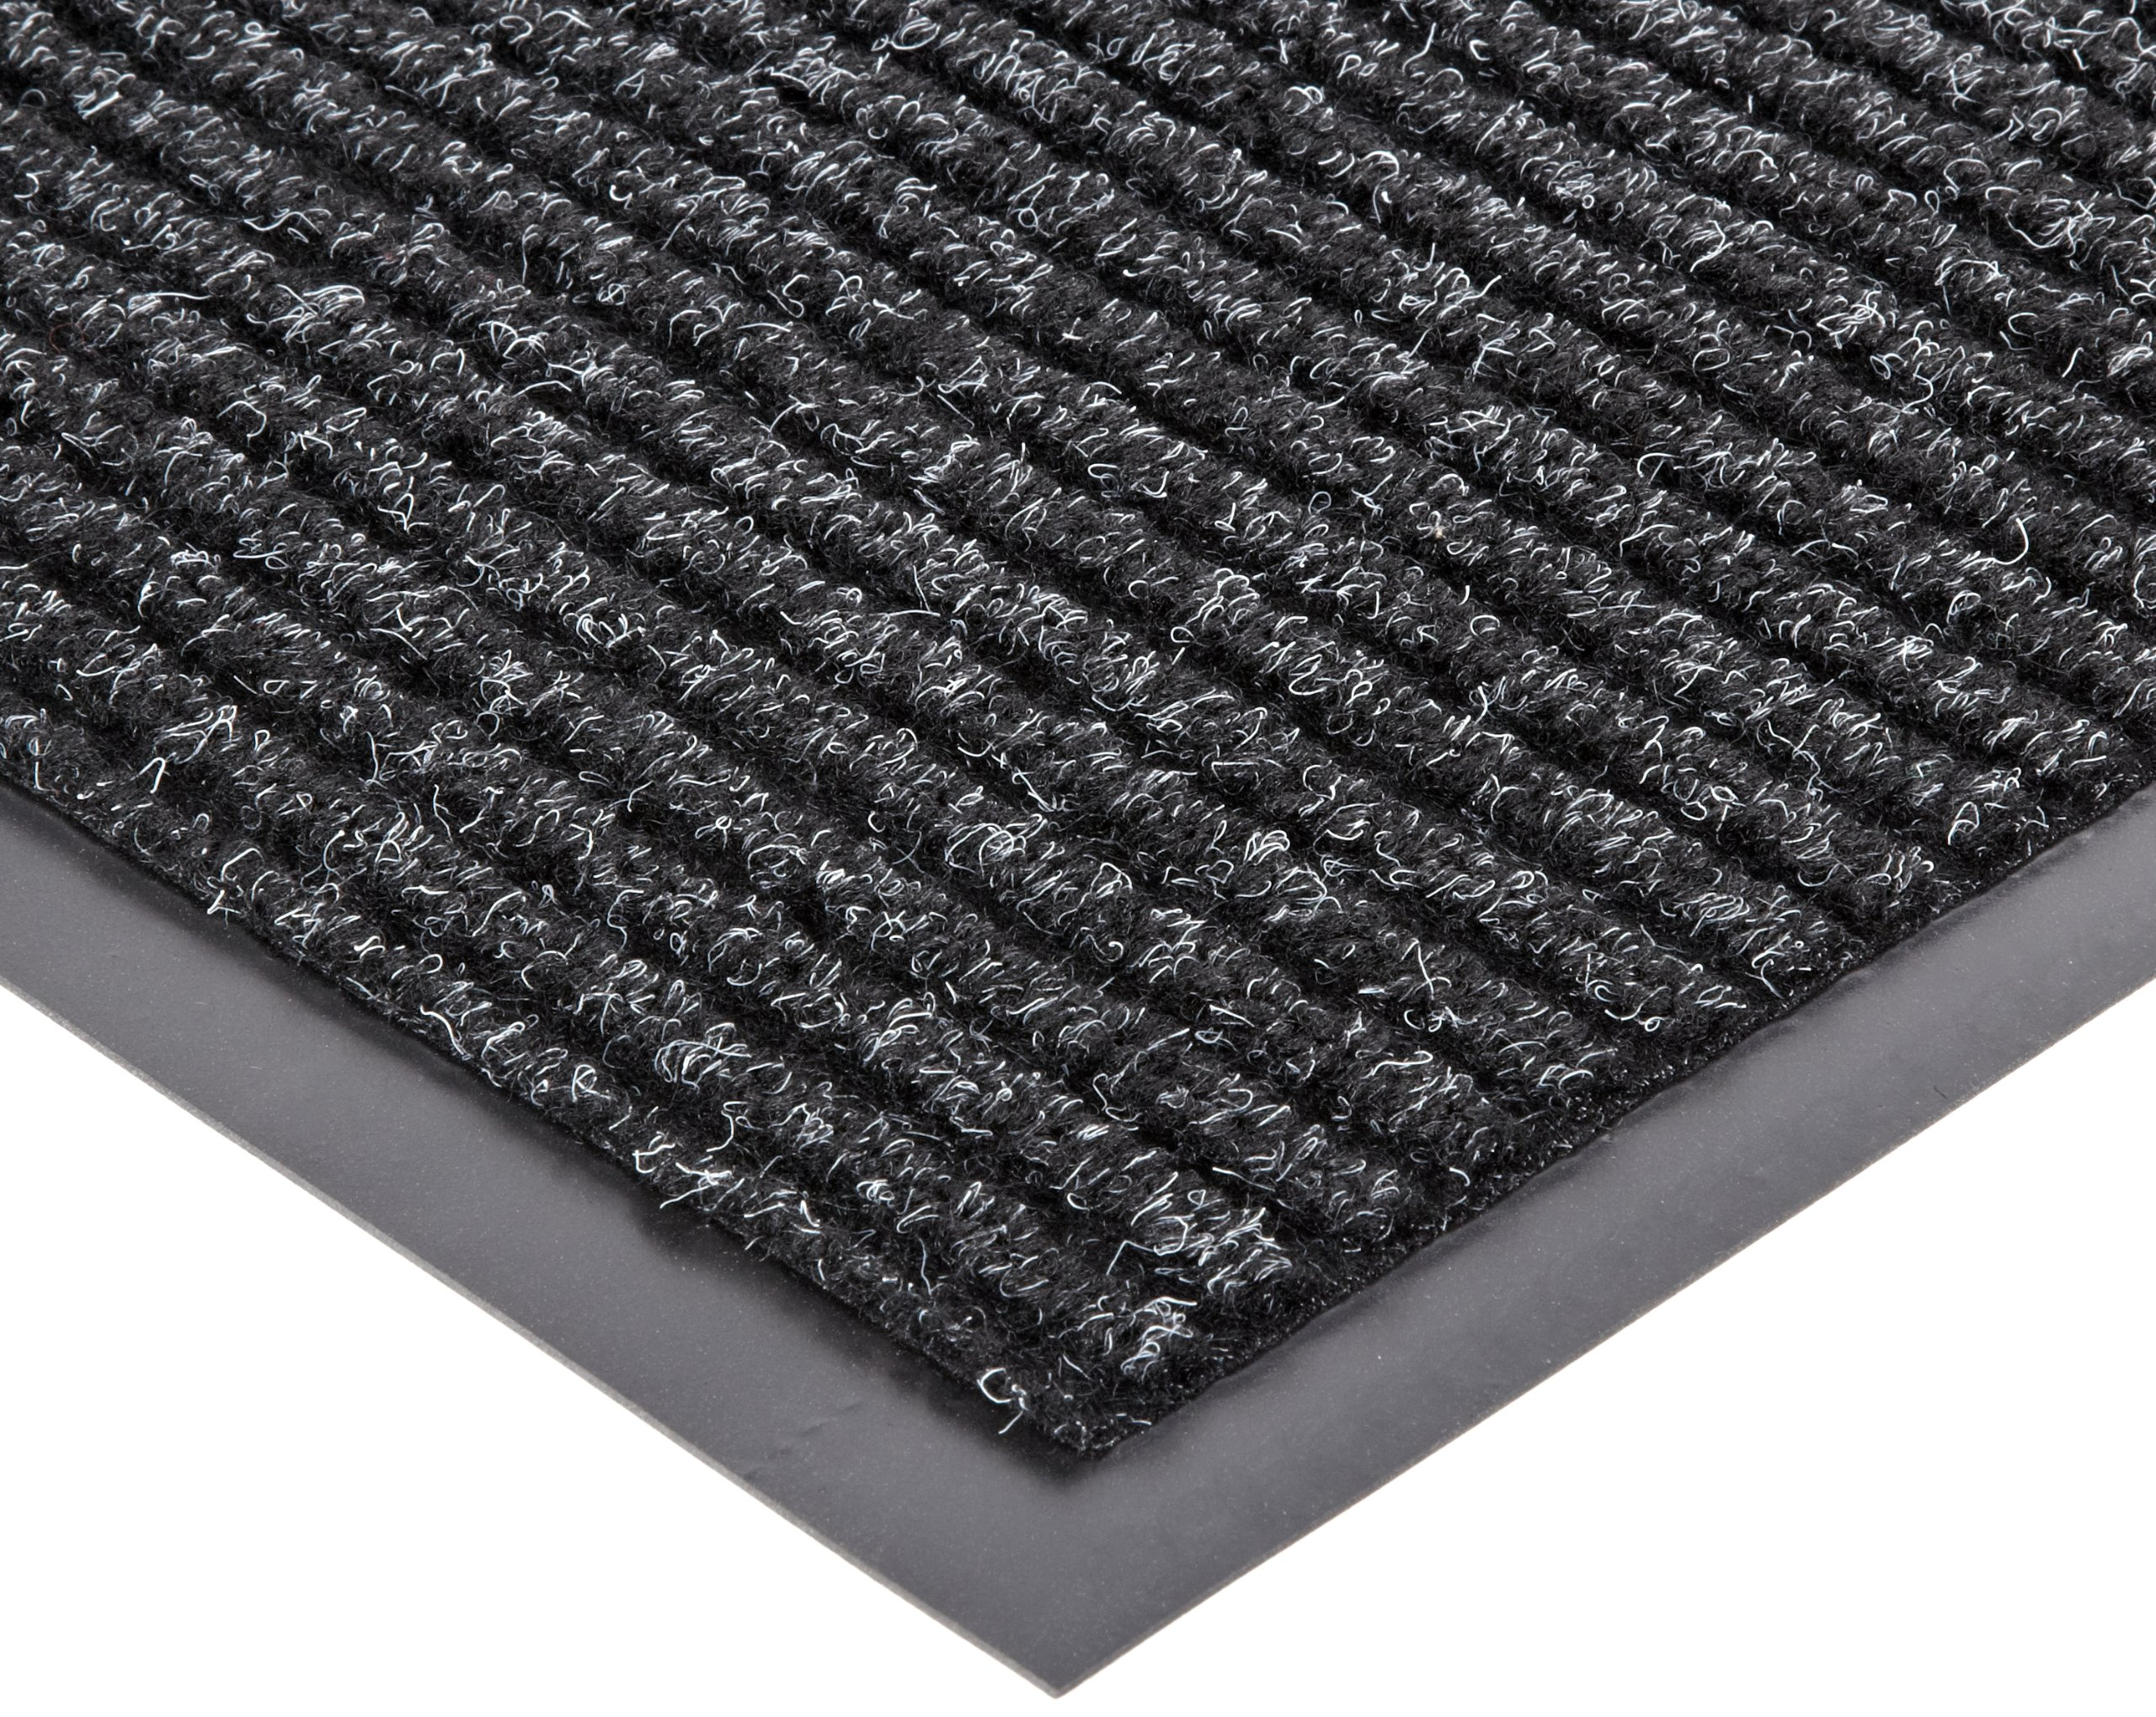 NoTrax 109 Brush Step Entrance Mat, for Lobbies and Indoor Entranceways, 2' Width x 3' Length x 3/8'' Thickness, Charcoal - 109S0023CH